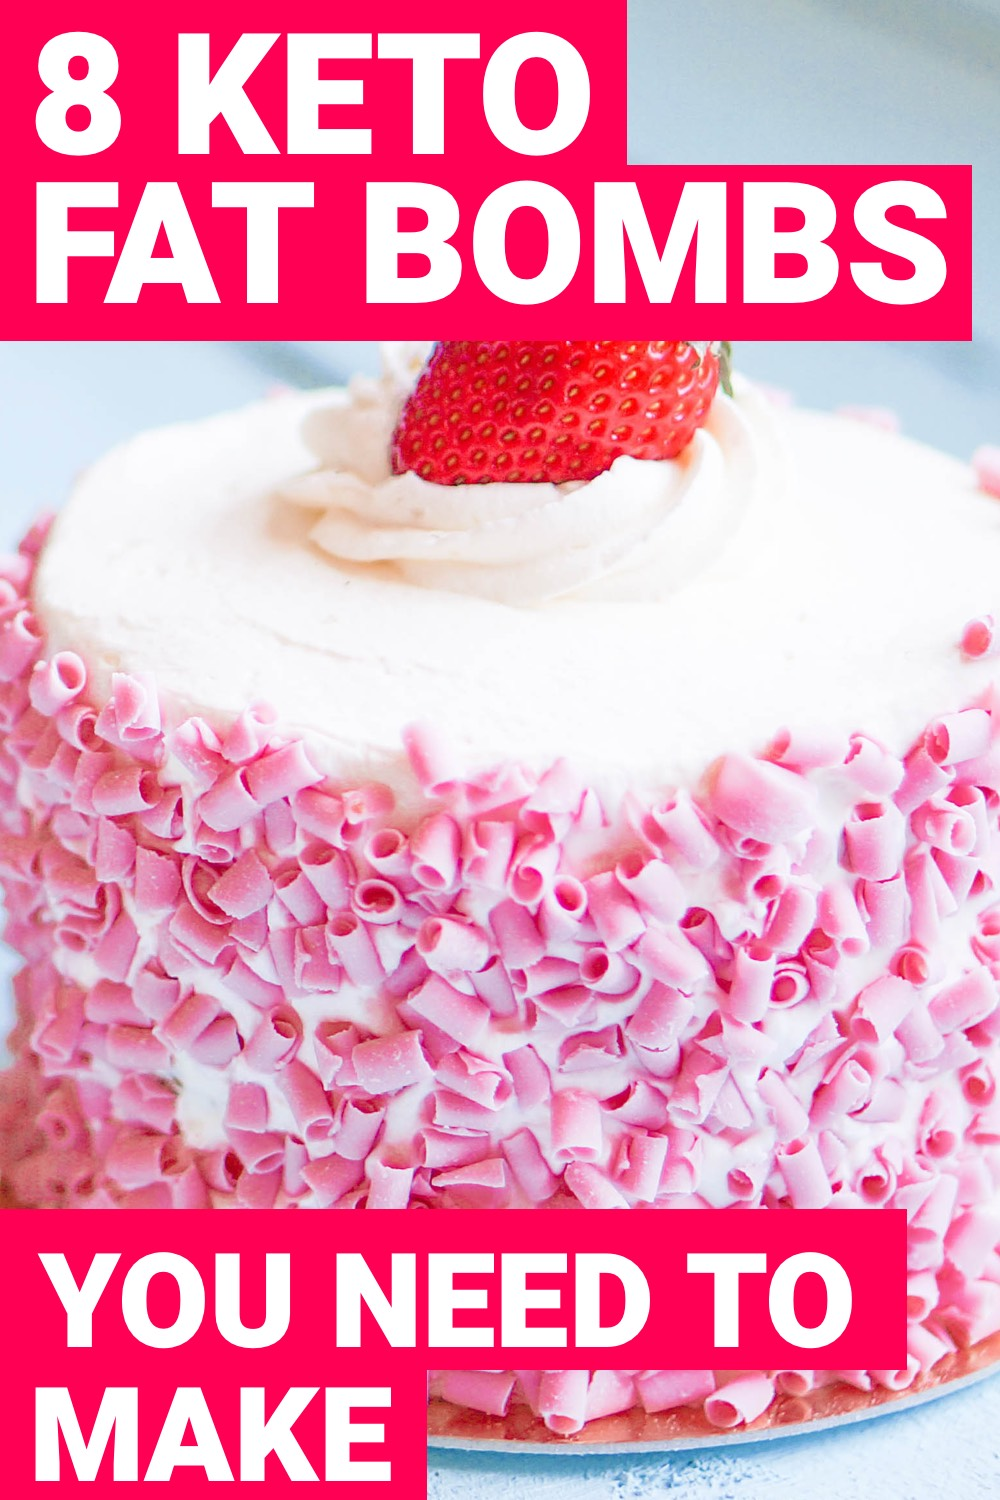 When you're on the ketogenic diet, reaching your daily fats requirement can be tough. Here are 8 keto fat bombs that  will help you reach your daily fats requirement.